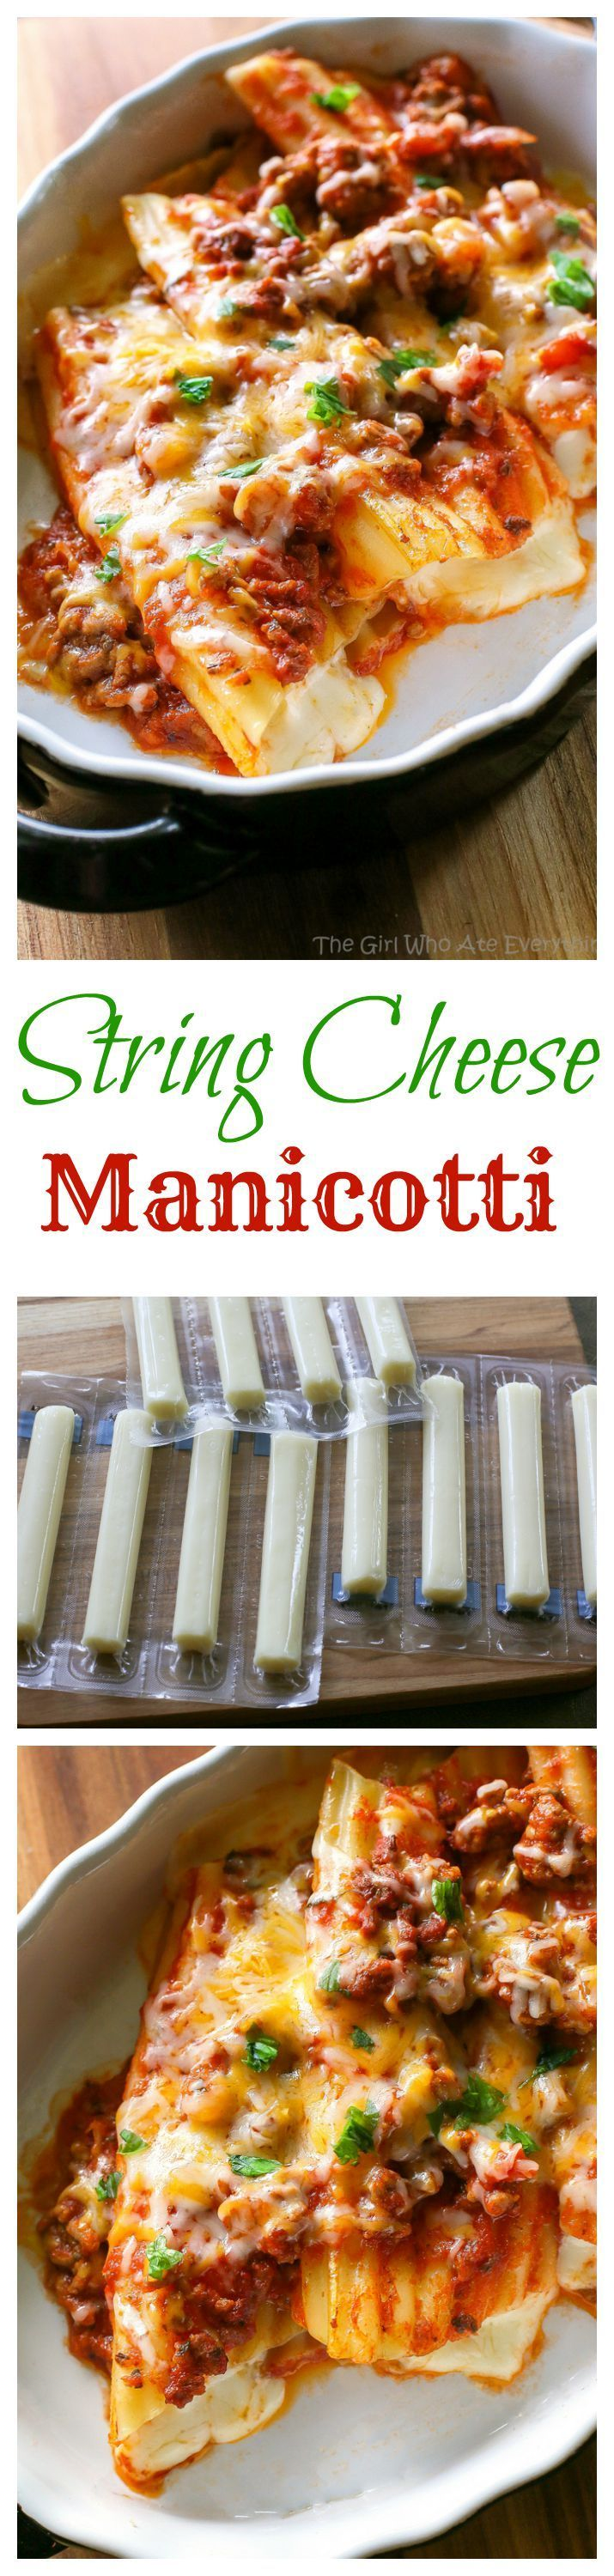 String Cheese Manicotti - Easy to stuff manicotti by using string cheese. Weeknight meals don't get easier than this!